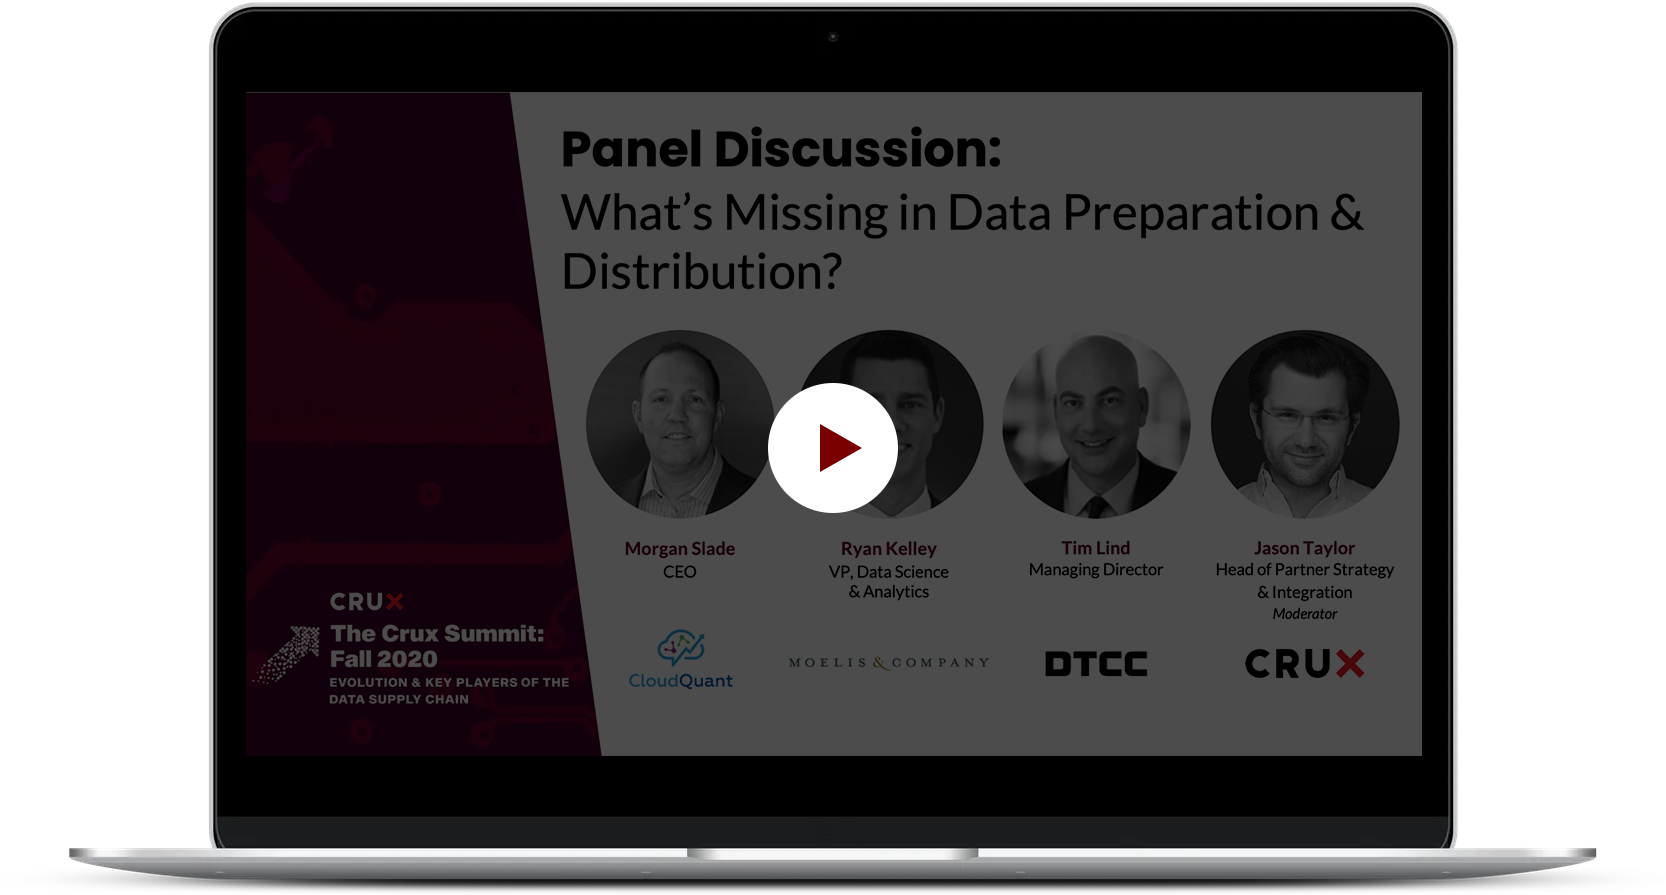 Crux_TCS_PanelDiscussion+WhatsMissinginDataPreparationDistribution_07